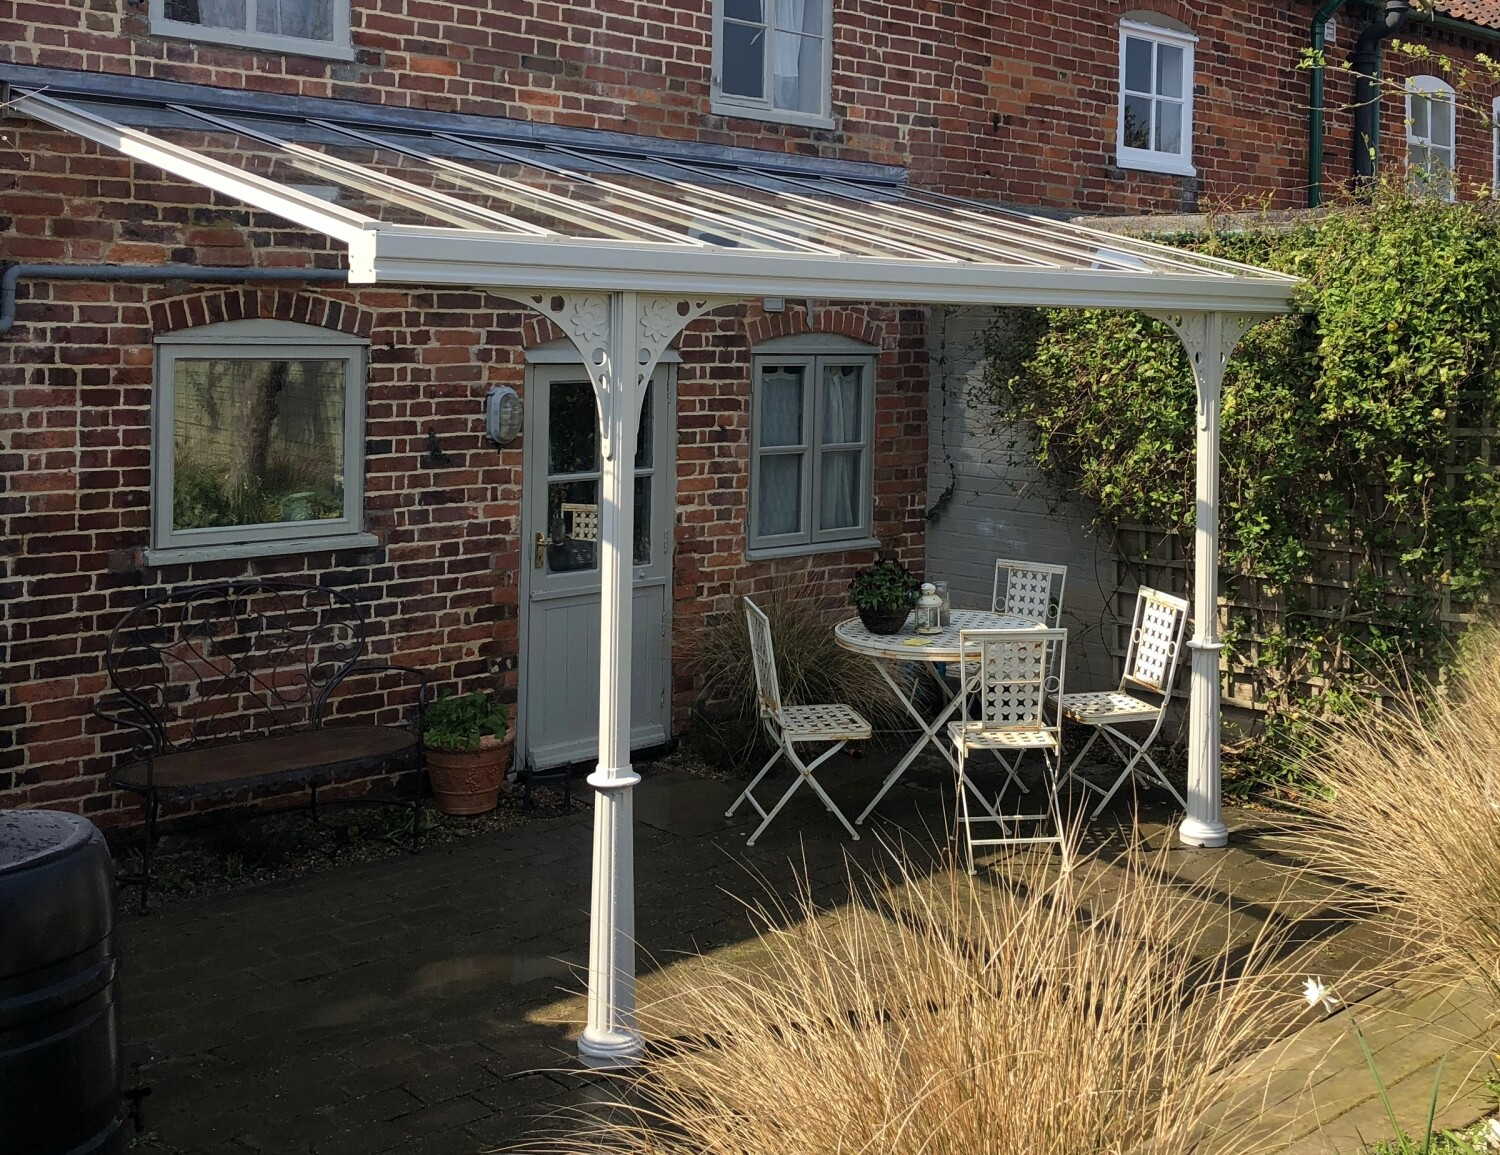 Victorian Style Veranda with Inset Posts